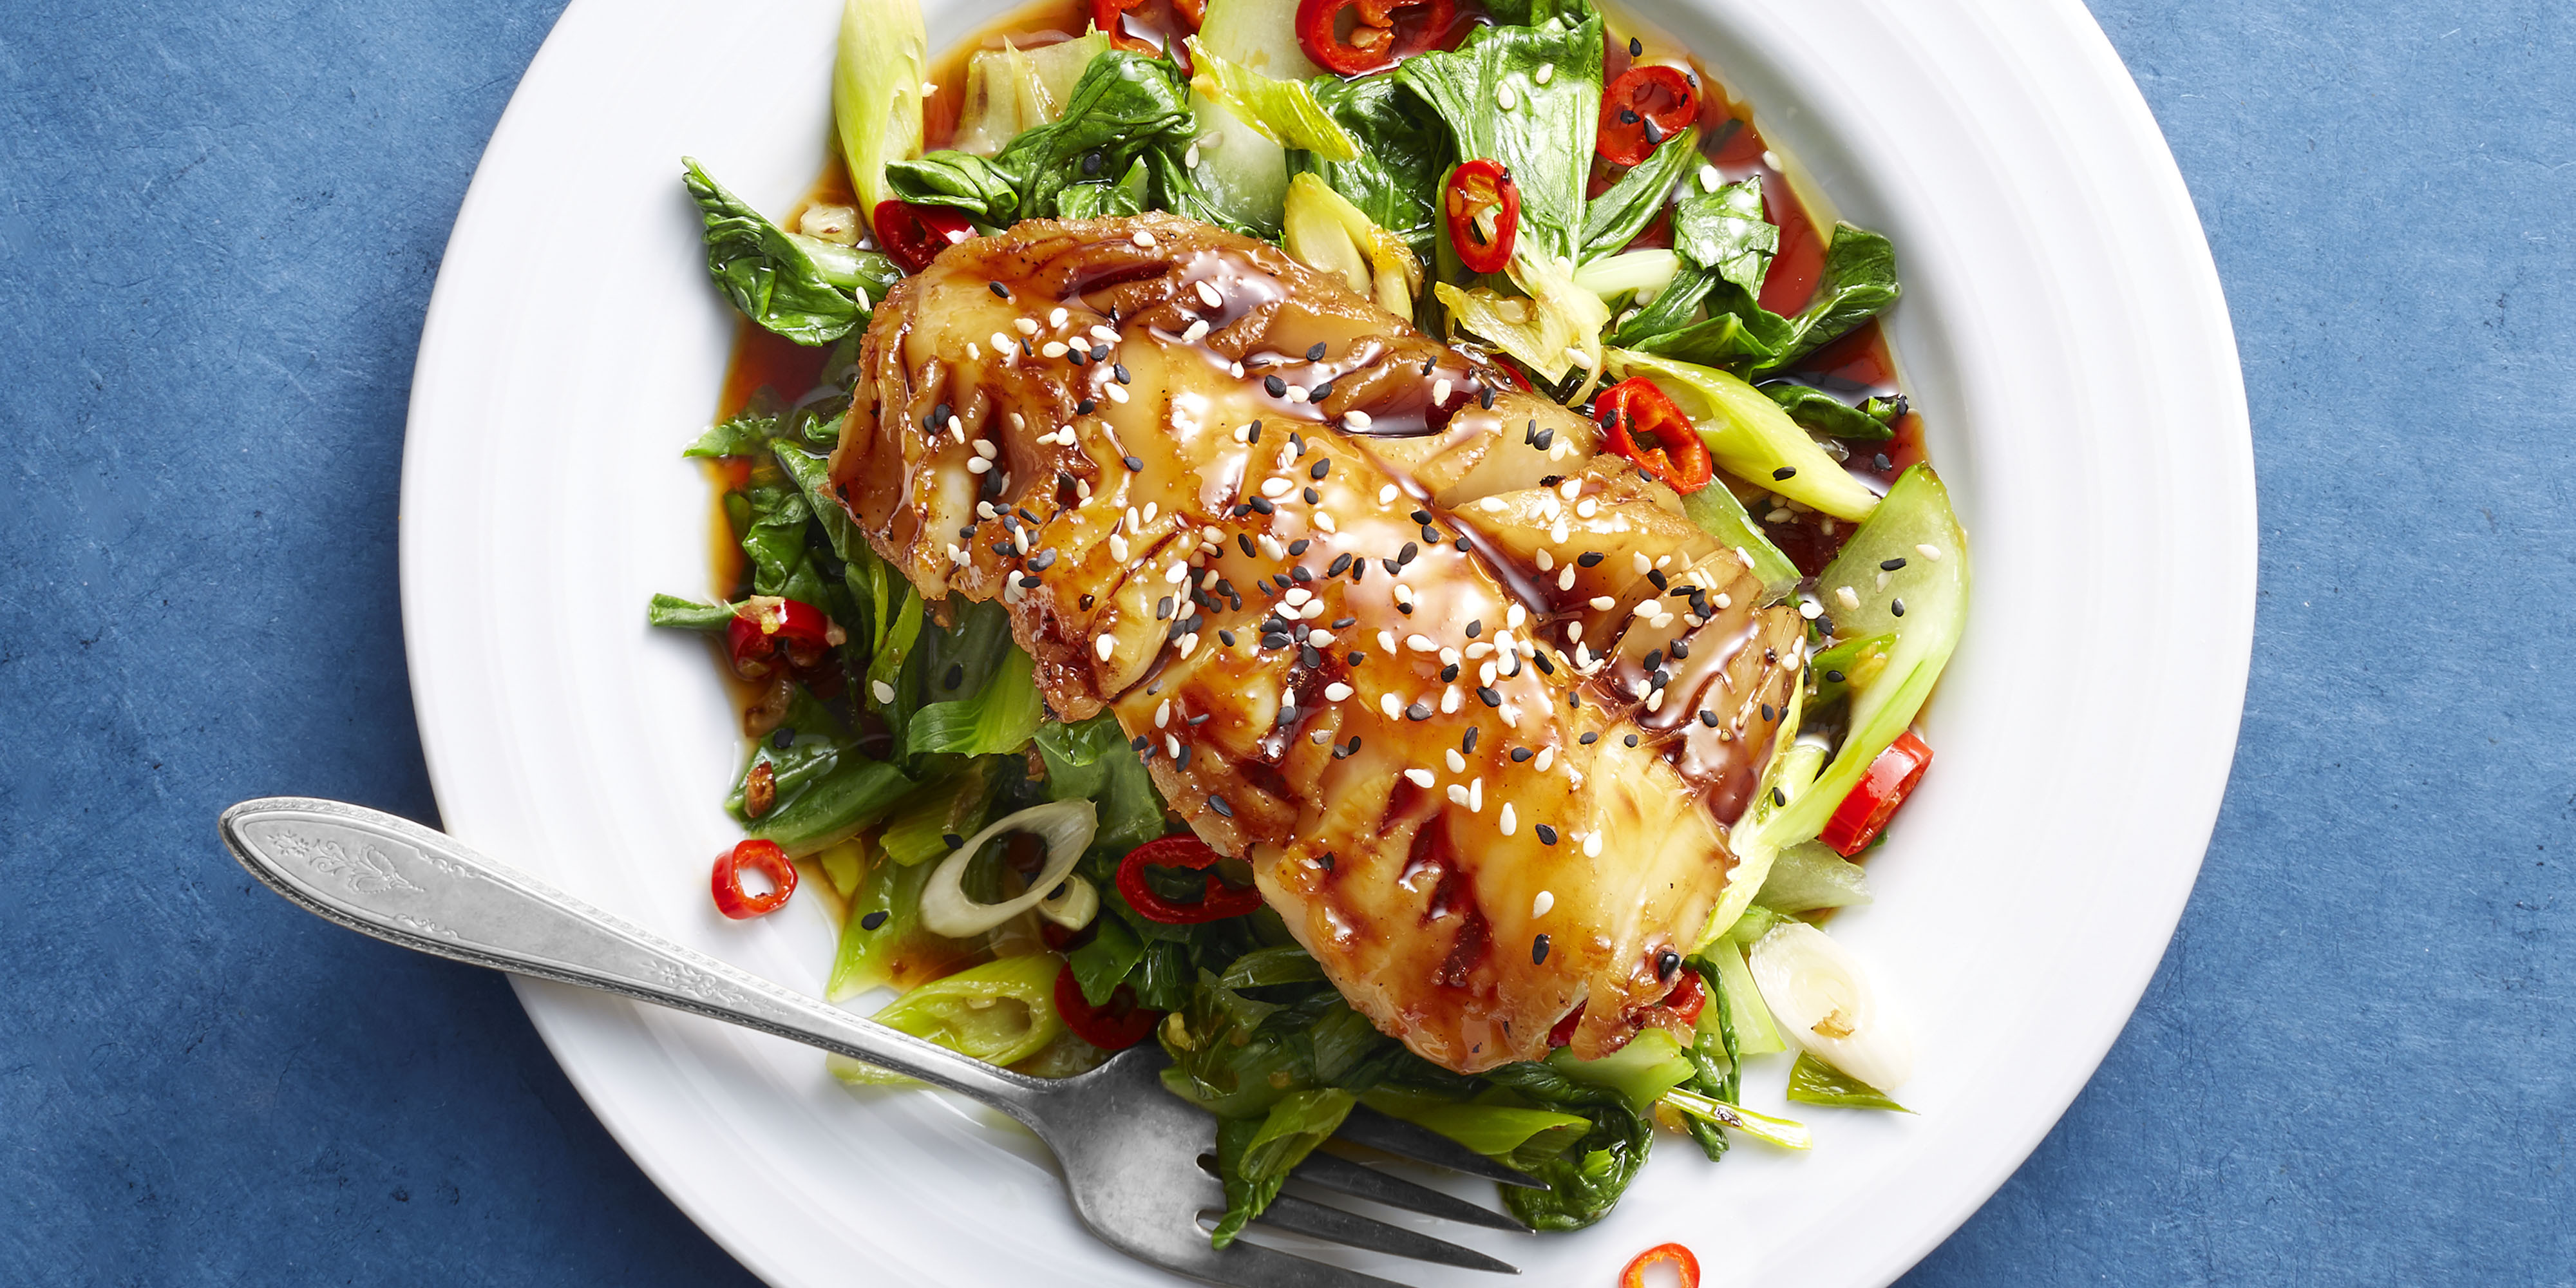 Low Calorie Dinners  28 Easy Low Calorie Meals Healthy Dinner Recipes Under